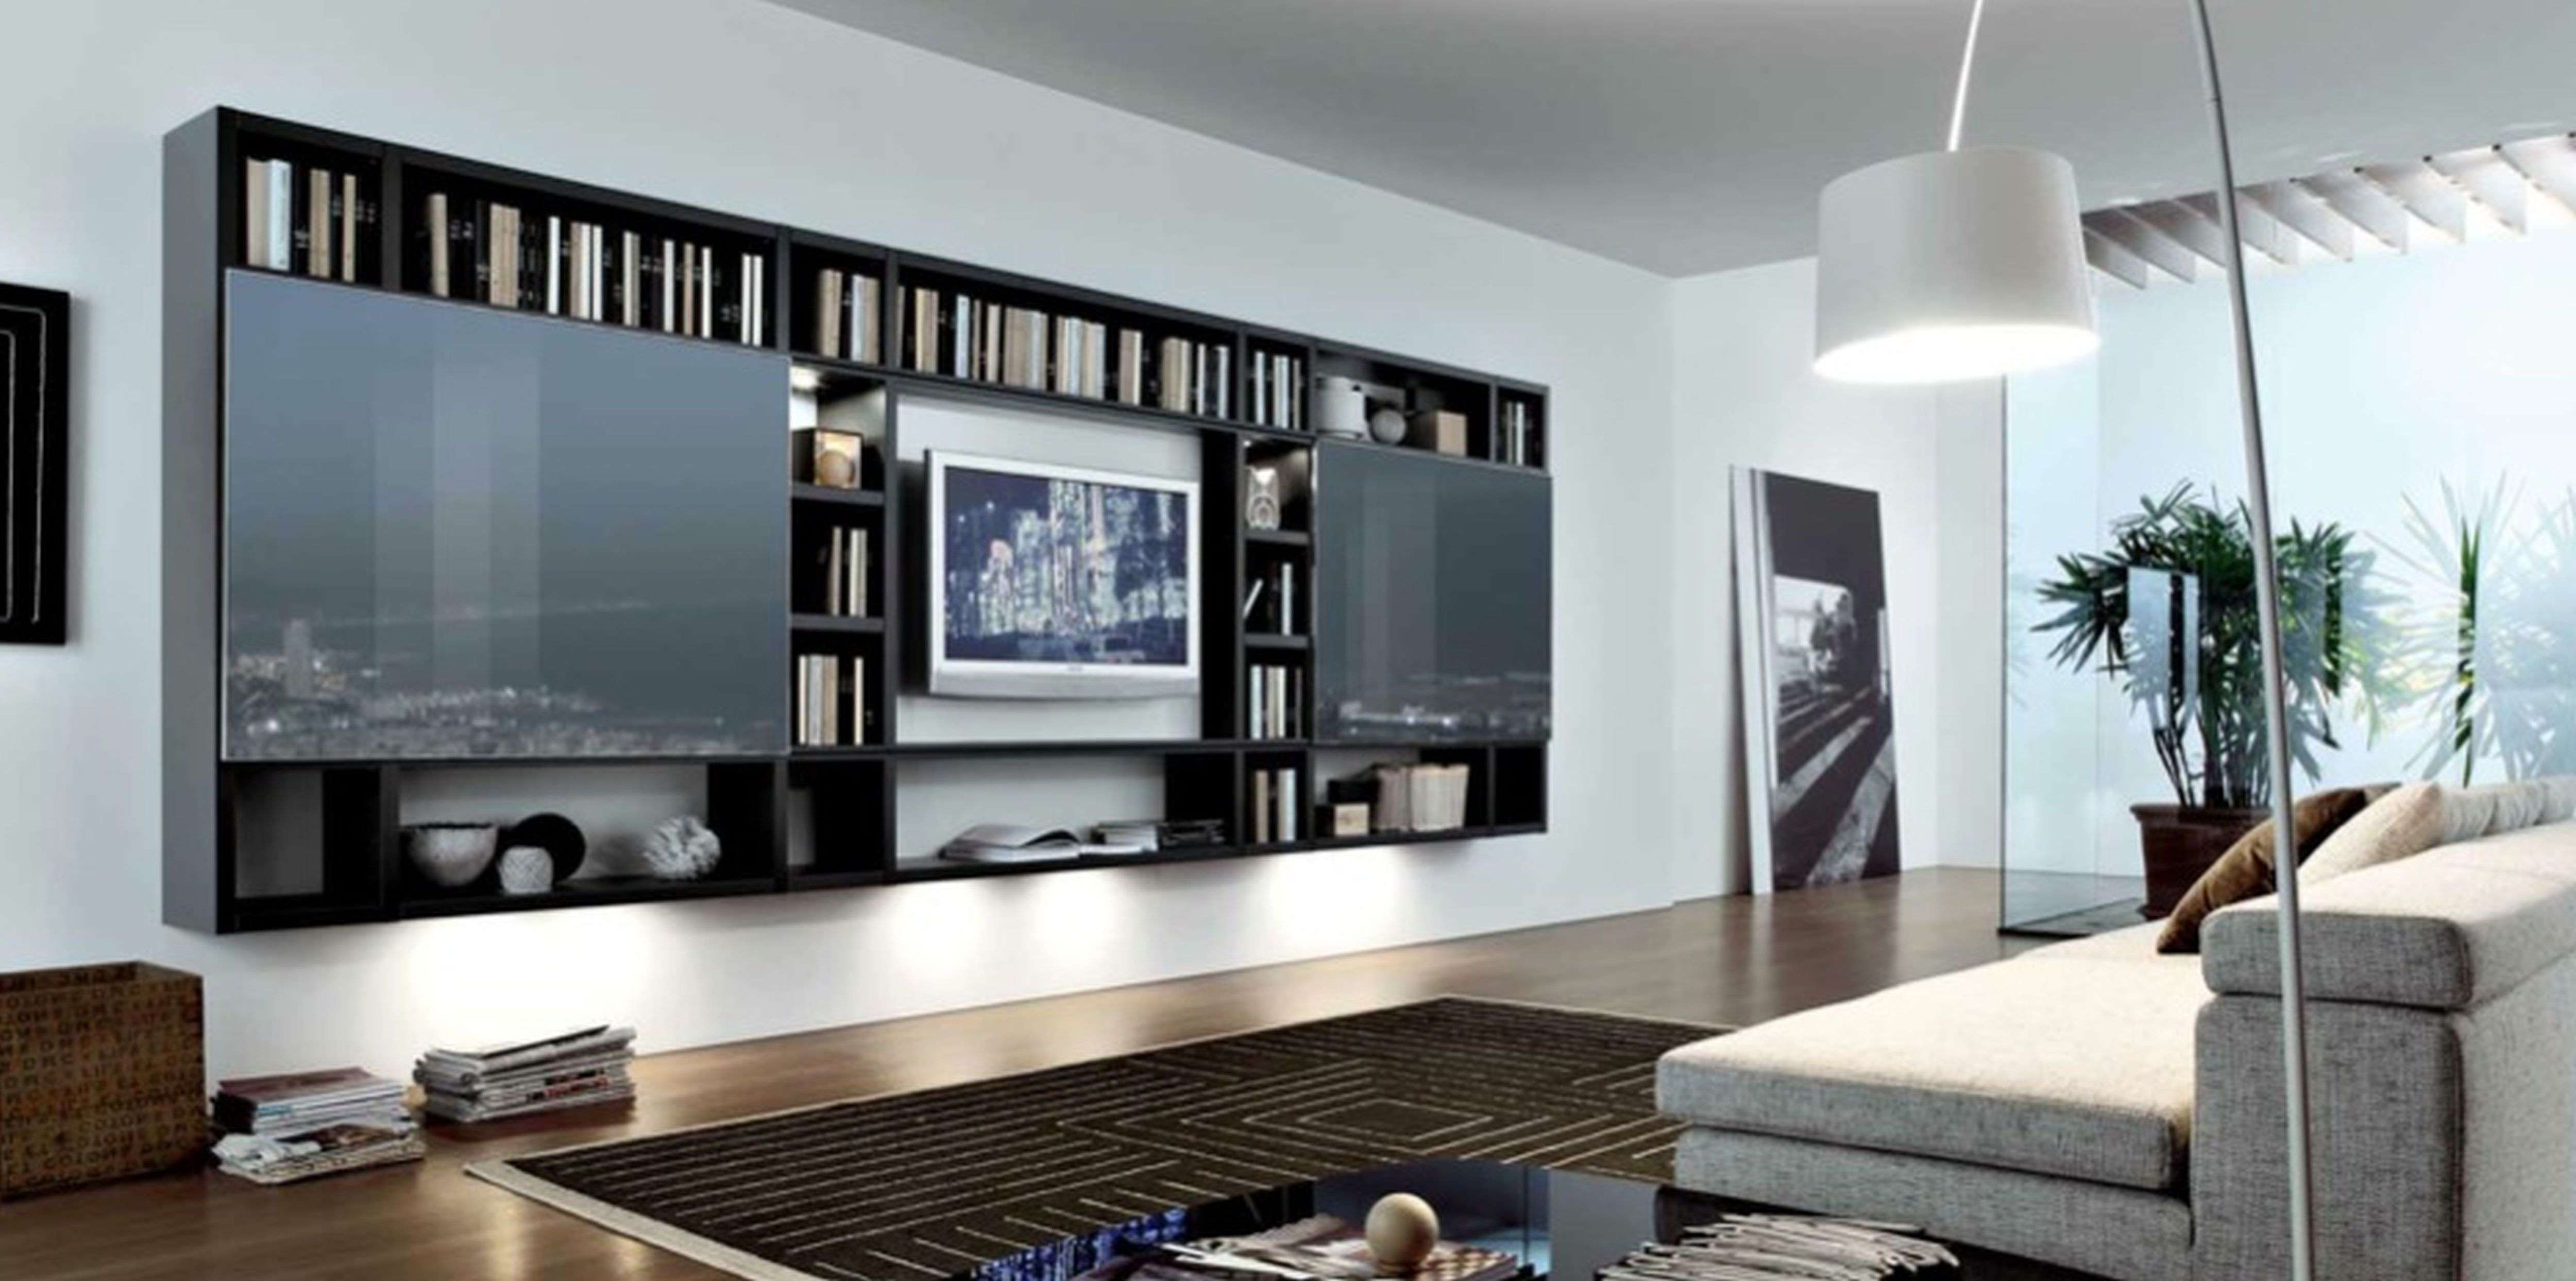 Cool Living Room Ideas Home Decorating